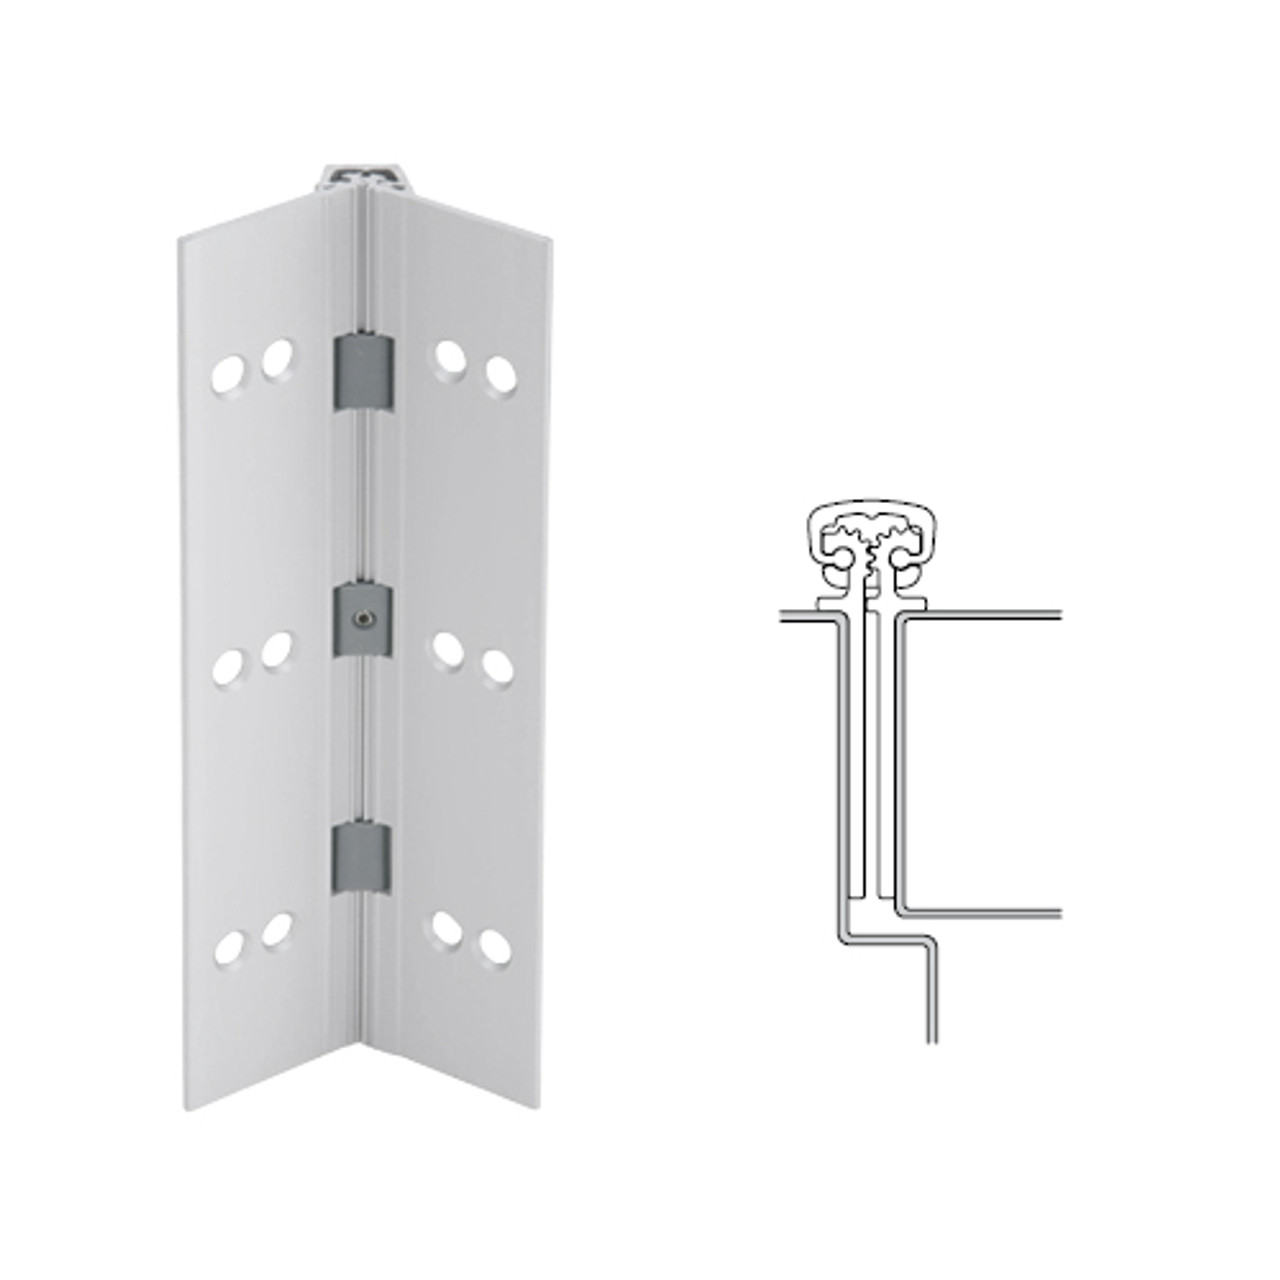 027XY-US28-95-HT IVES Full Mortise Continuous Geared Hinges with Hospital Tip in Satin Aluminum